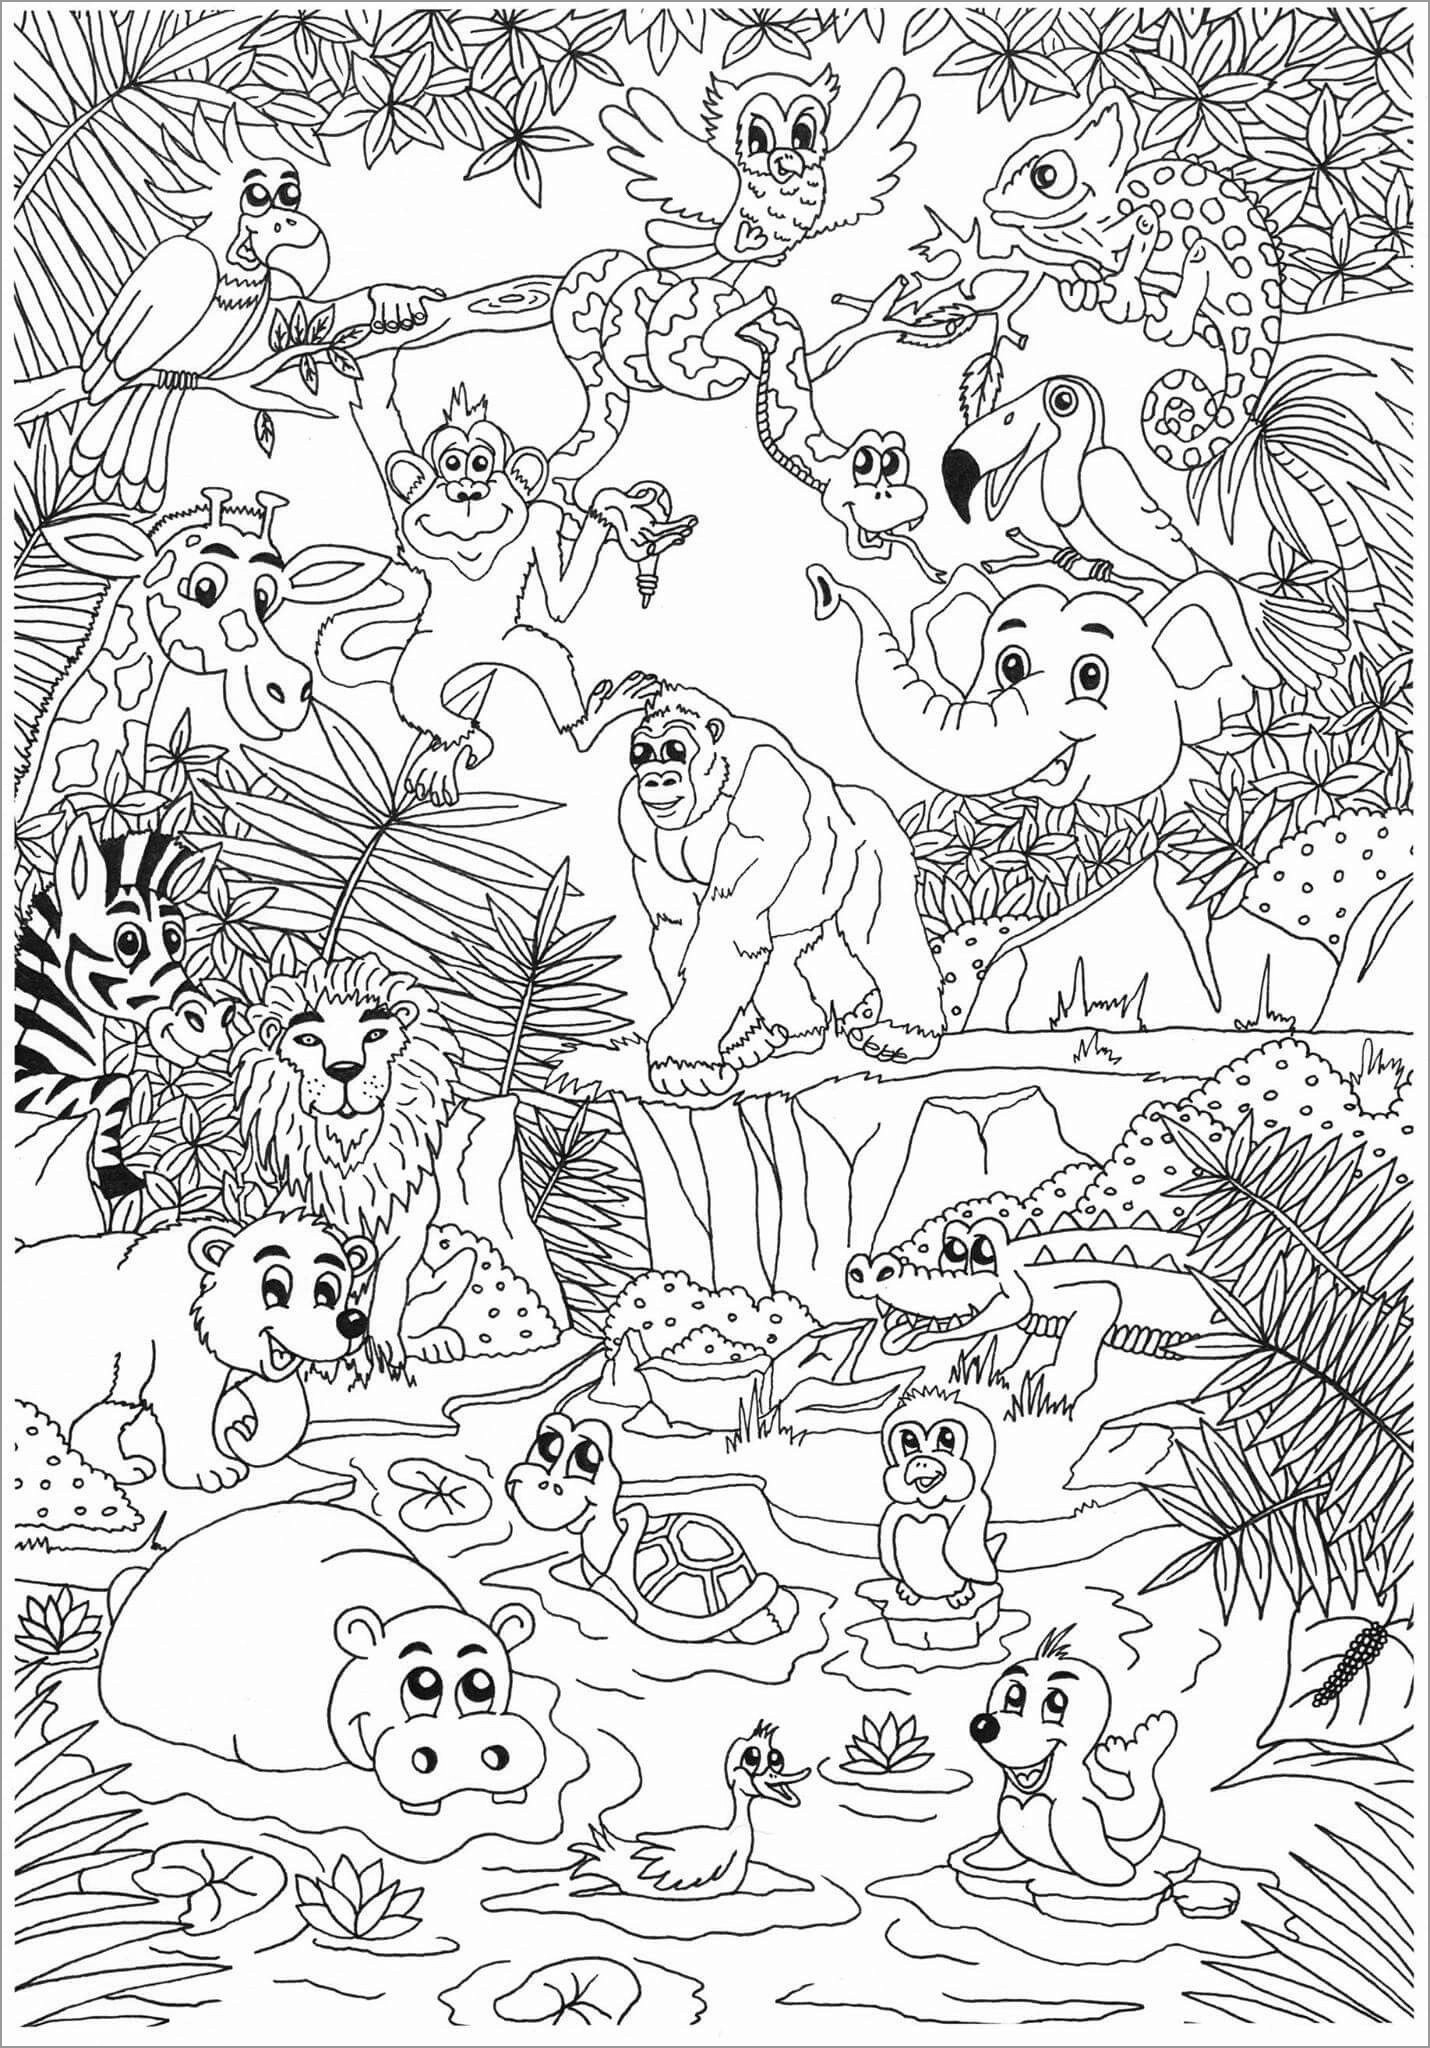 Zoo Coloring Pages for Adult